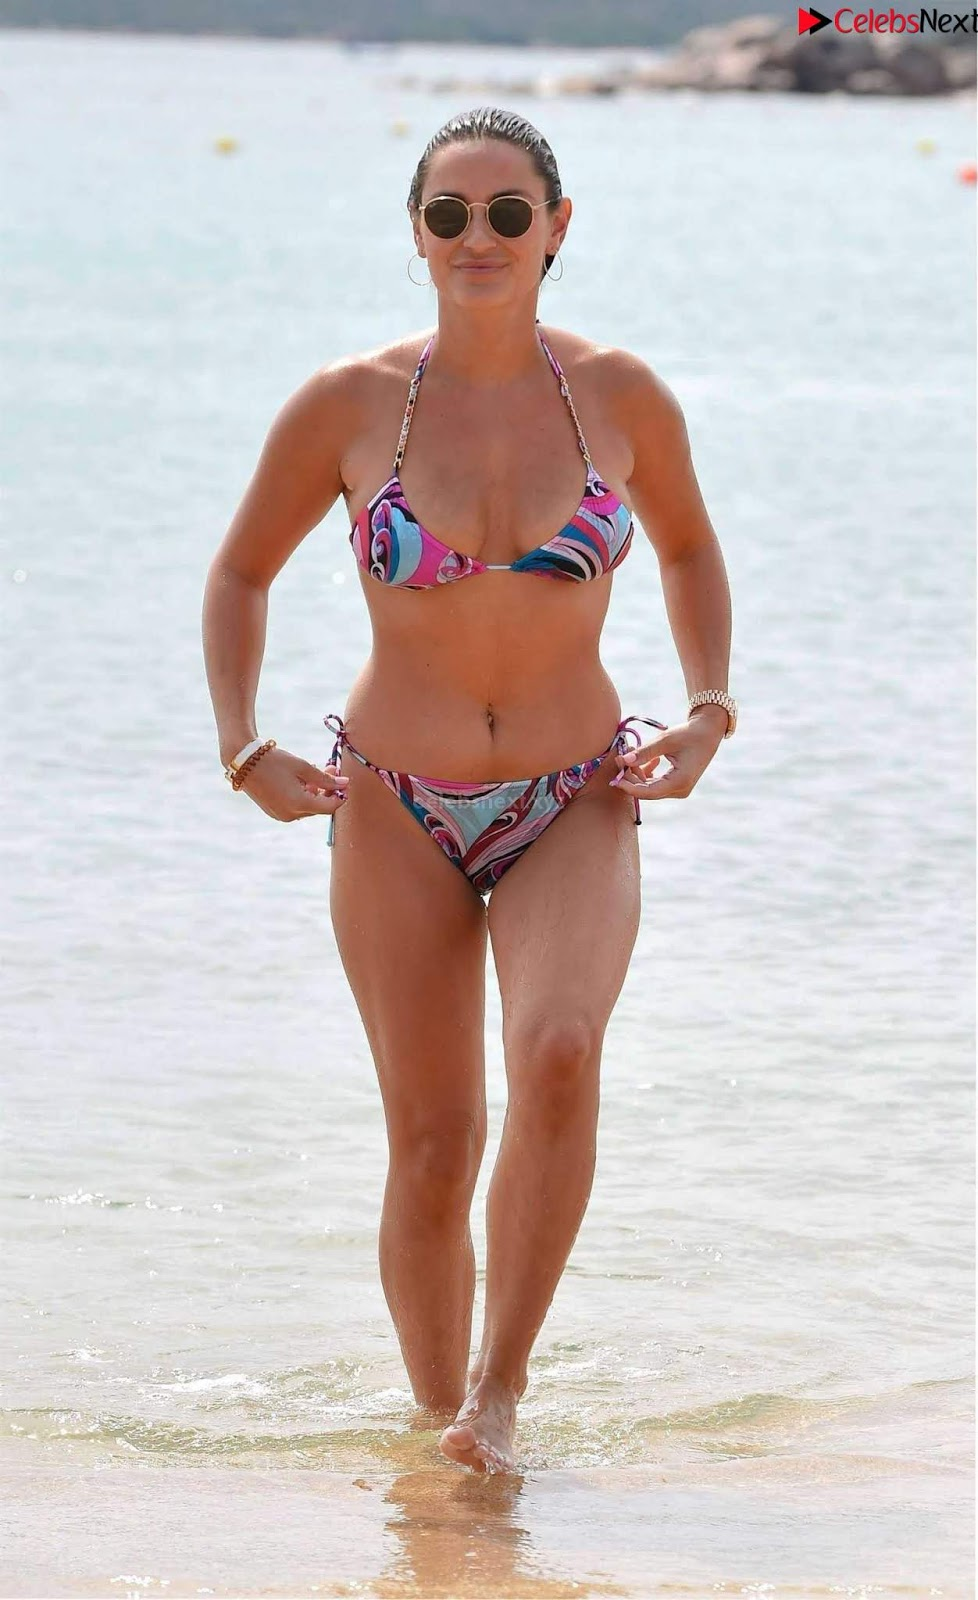 Sam Faiers sexy ass in bikini at the beach in sardinia 2018 09 13~CelebrityBooty.co Exclusive Celebrity Pics